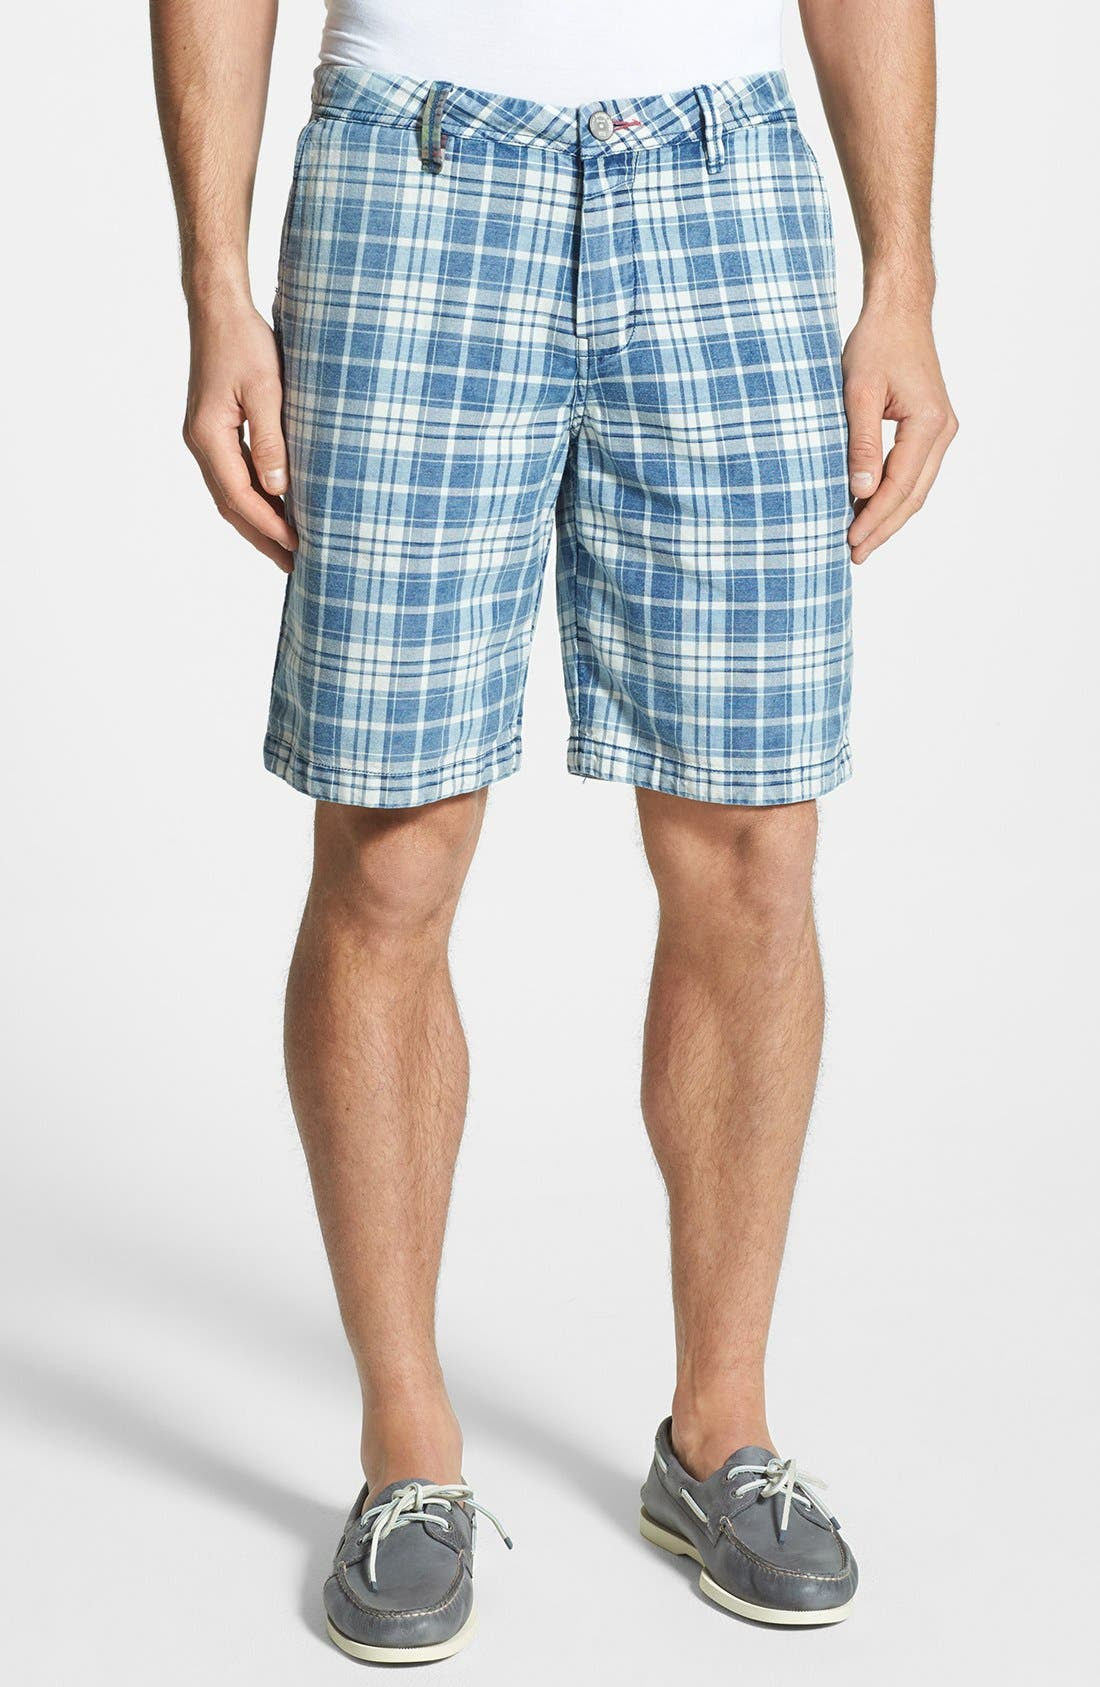 Alternate Image 1 Selected - Tommy Bahama 'Ocean' Shorts